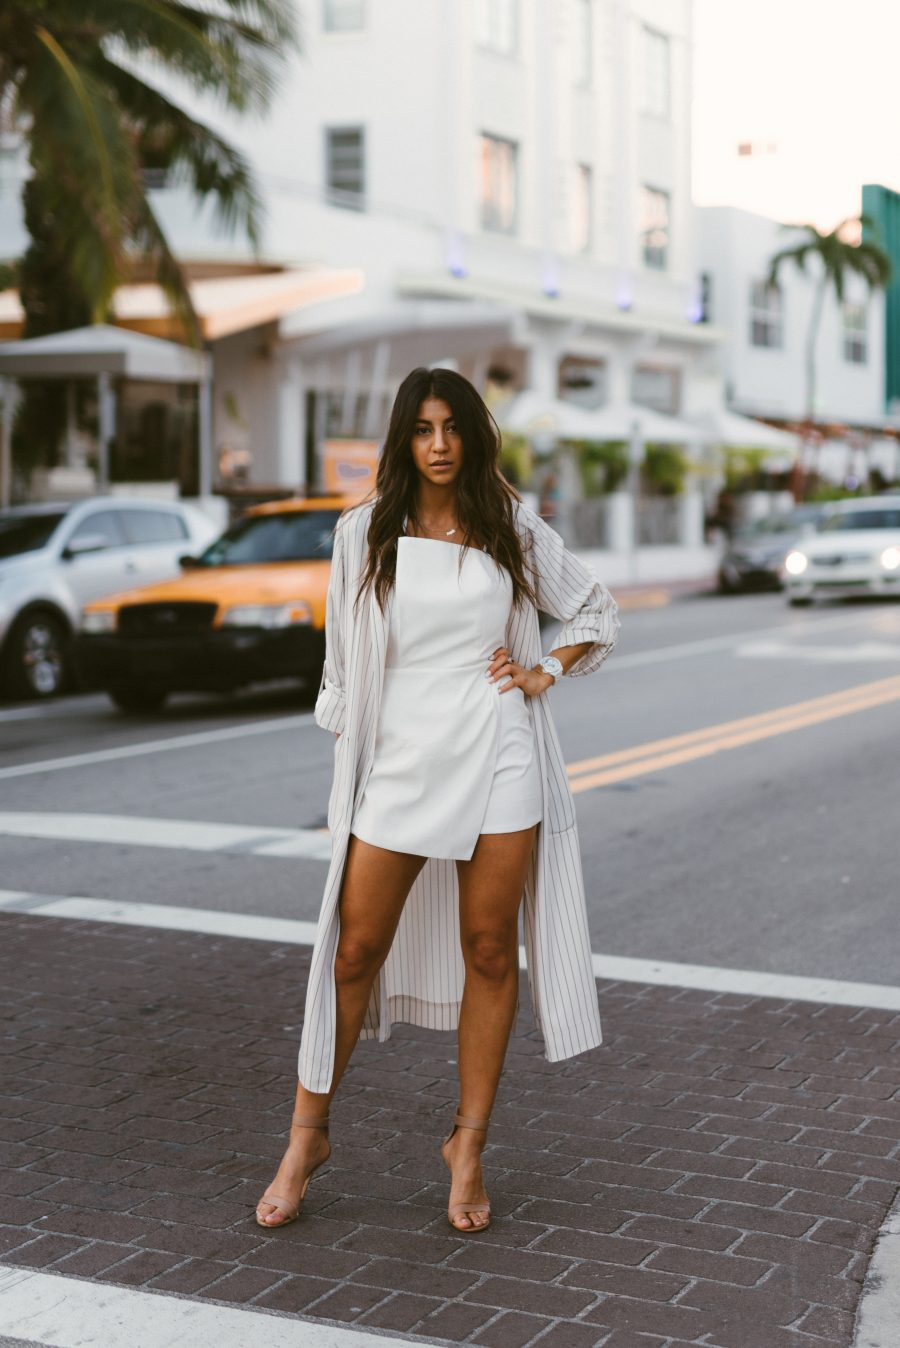 miami art basel blogger fashion streetstyle parties events white outfit duster coat pin stripe white dress gian vito rossi heels girl fashion style model